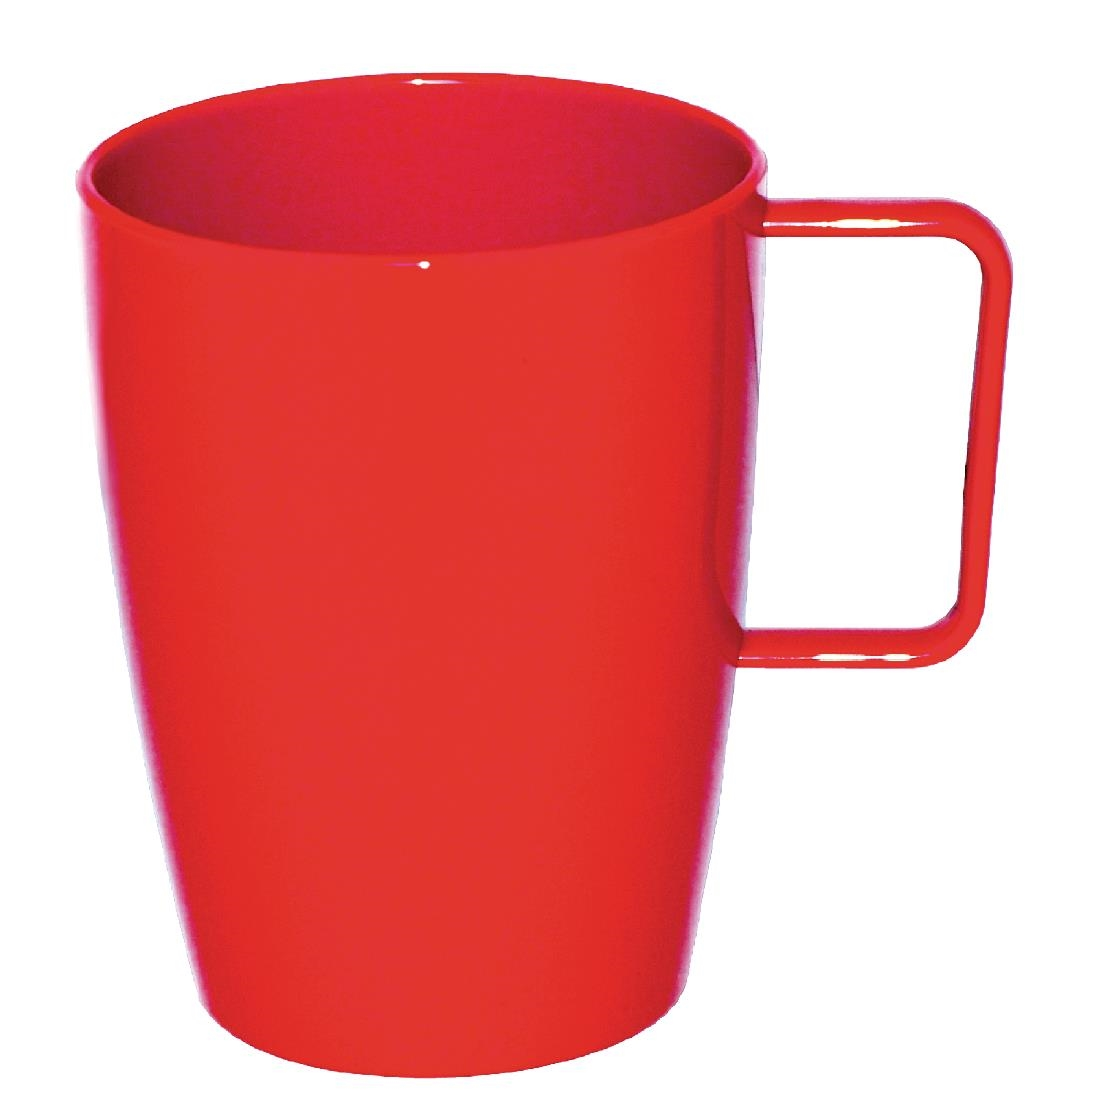 Cup - Red